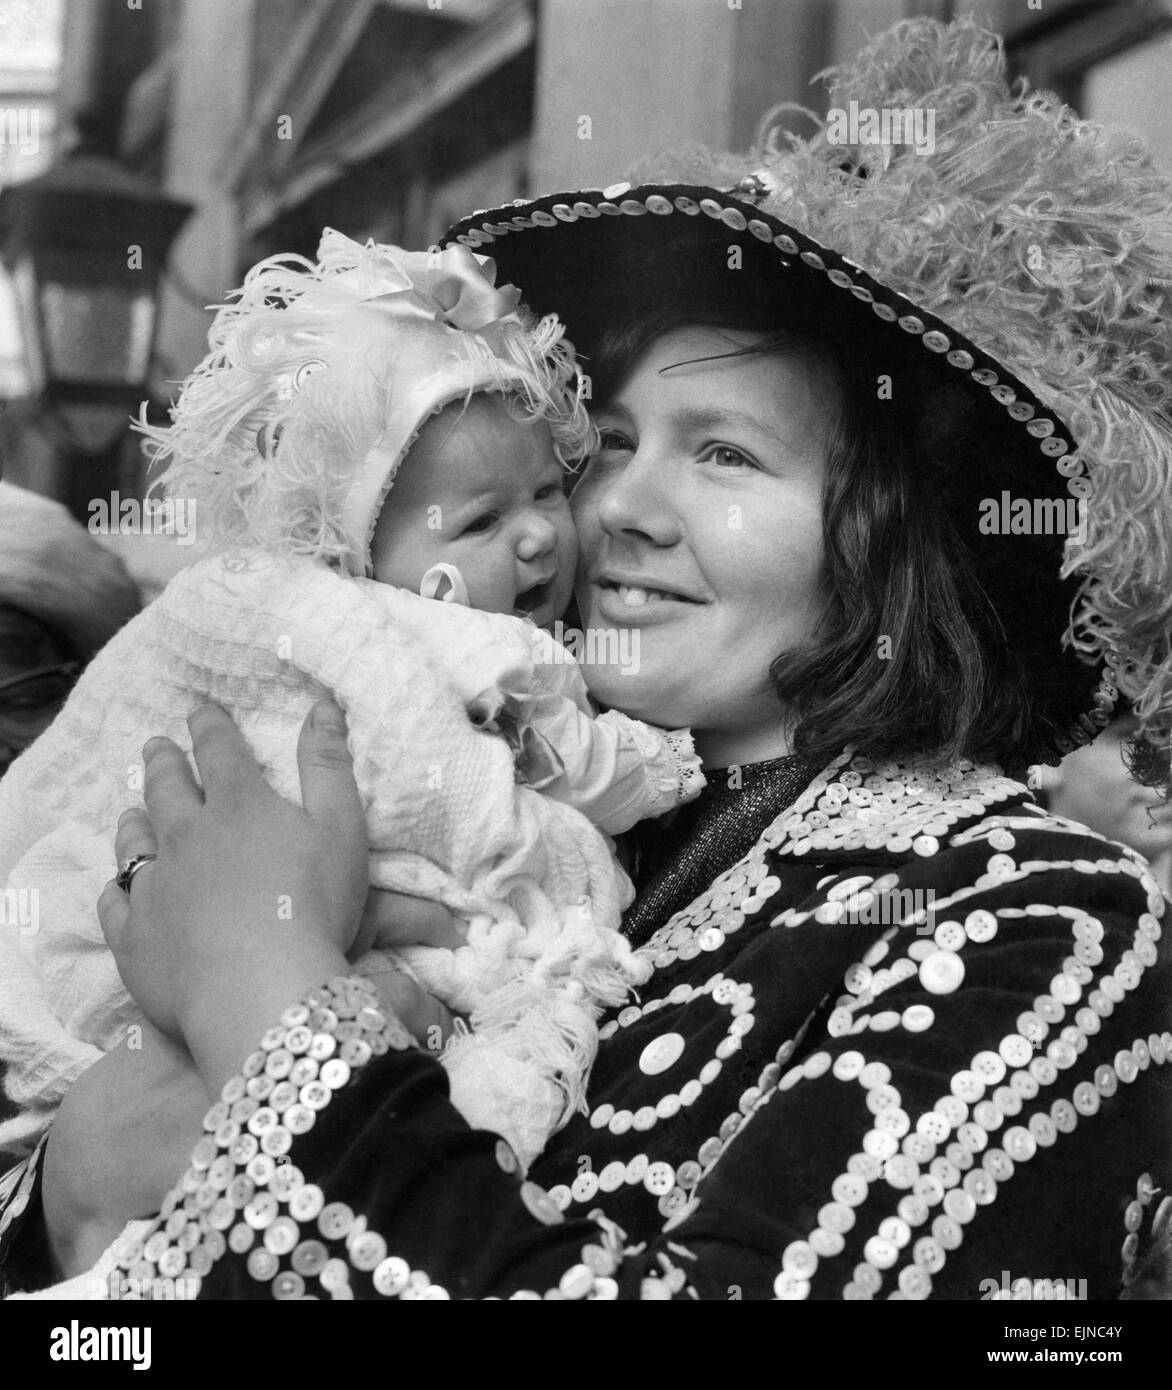 Baby Kim O'Shea 2 months old, one of a long line of Pearly Kings and Queens was christened at St Martin's - Stock Image